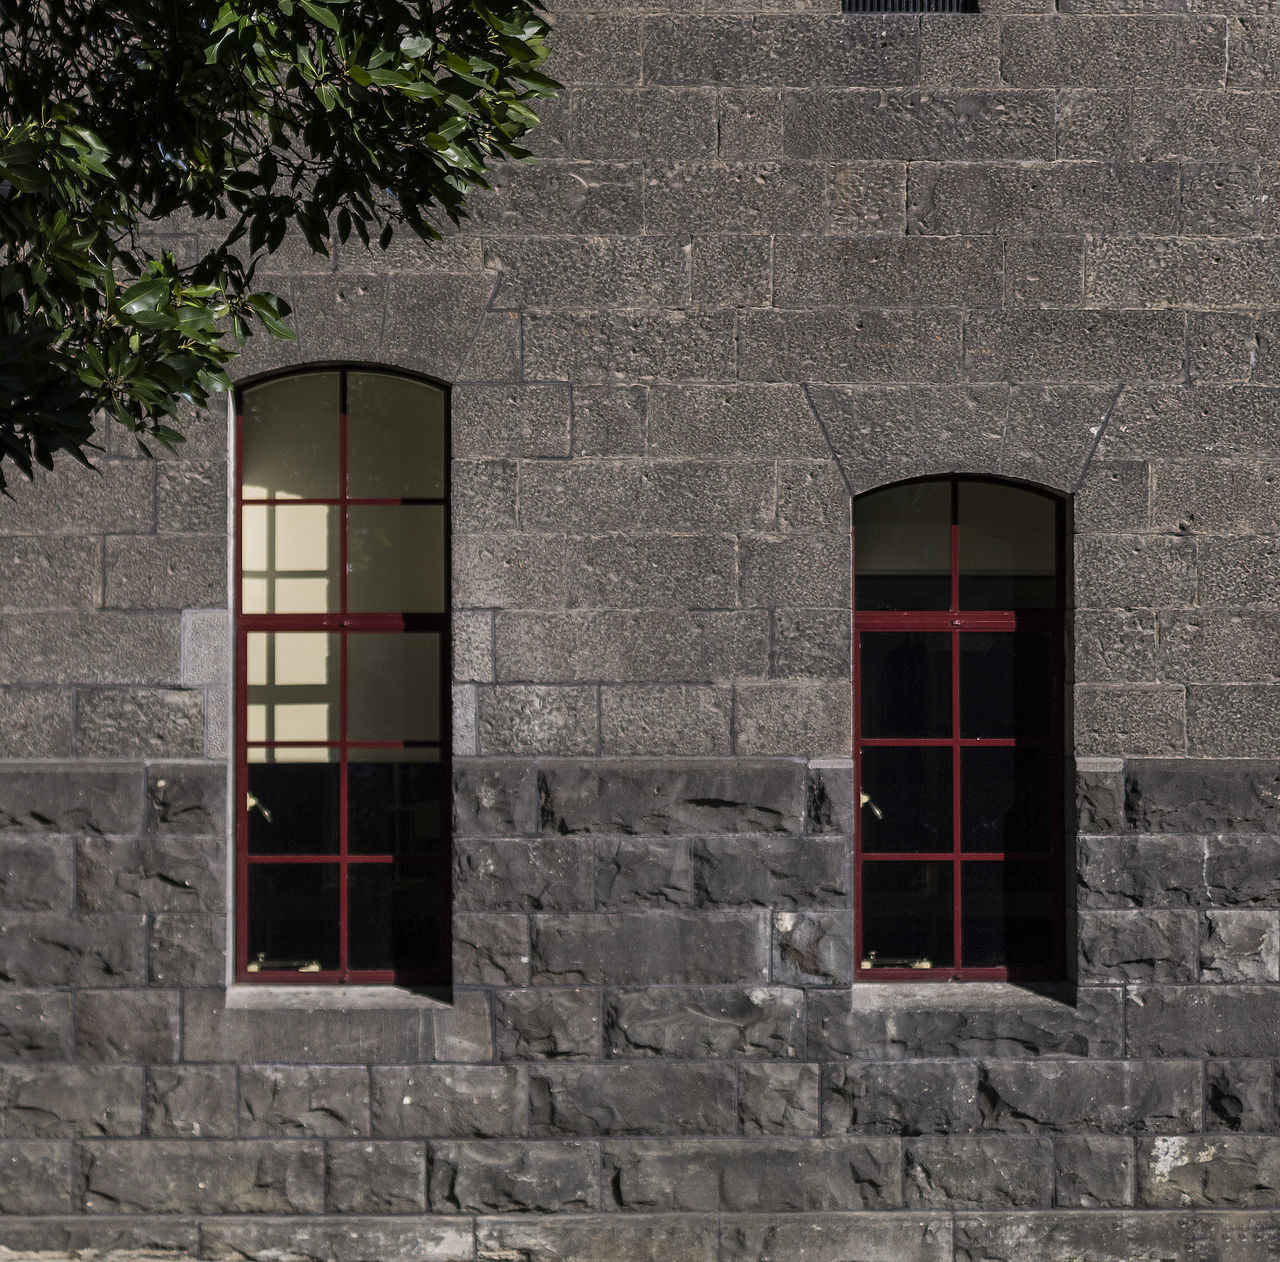 window, red, building, architecture, exterior, no people, outdoors, day